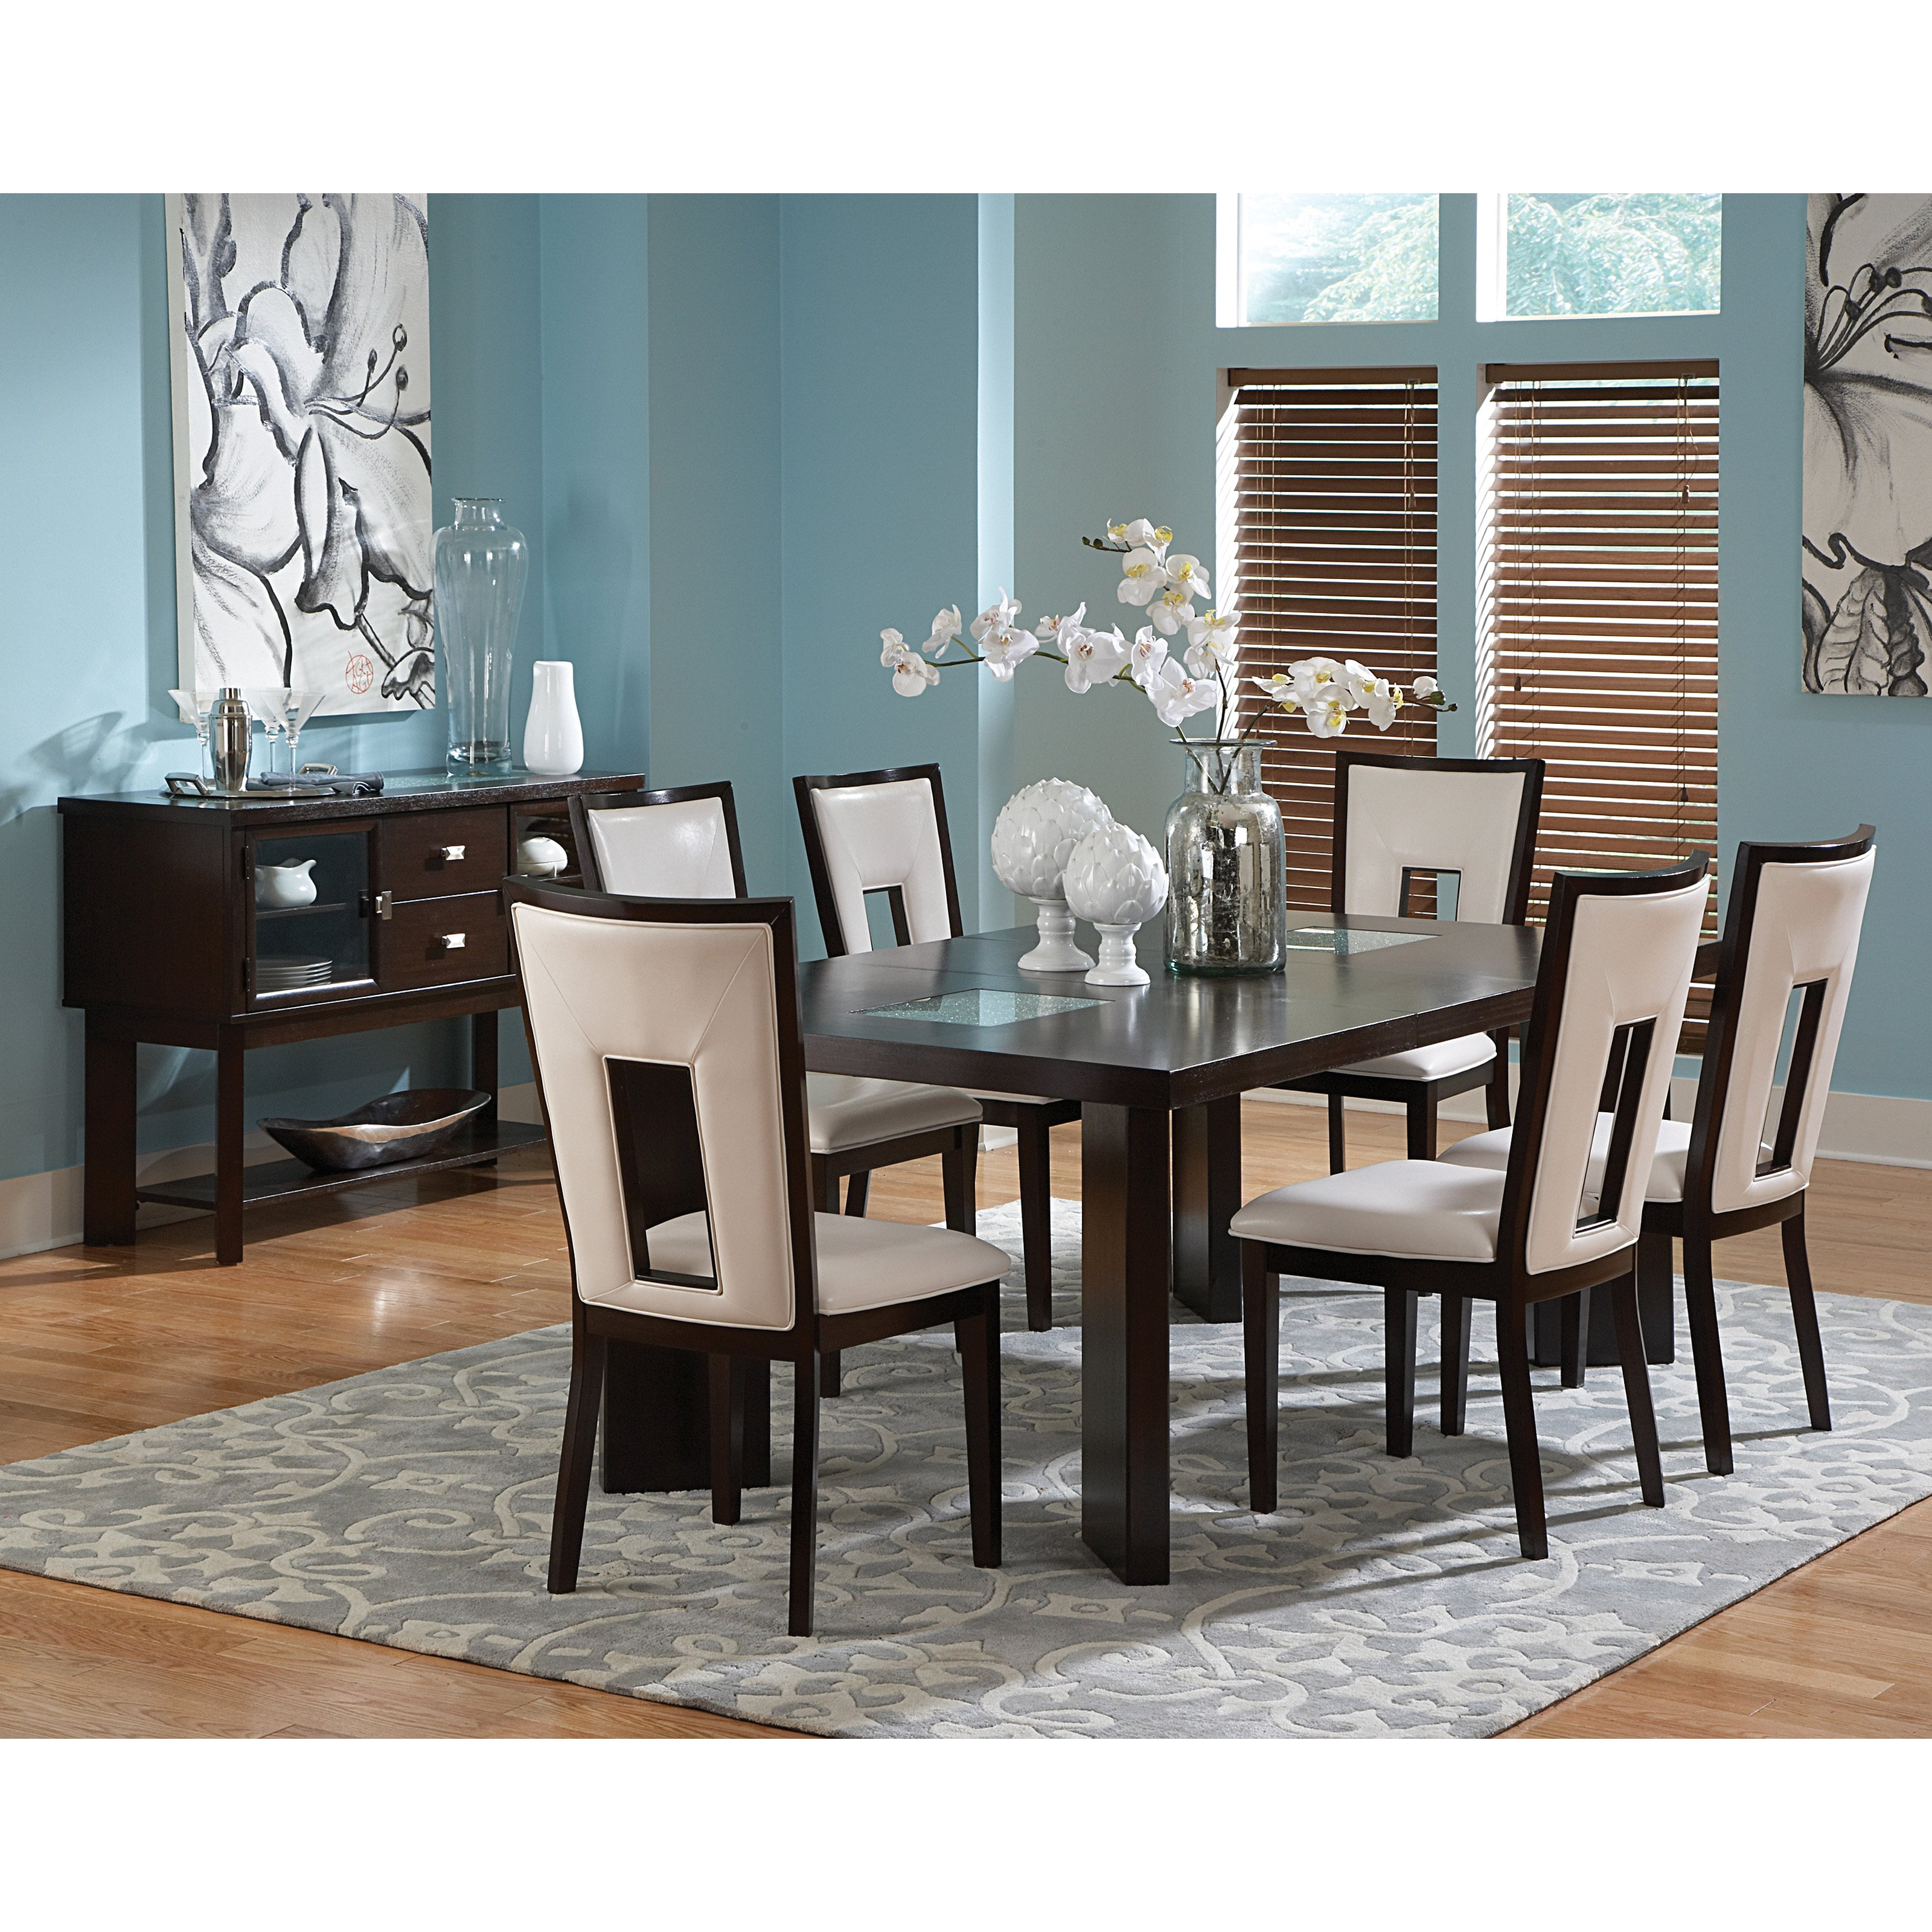 Steve Silver Delano Side Dining Chairs   Espresso   Set Of 2